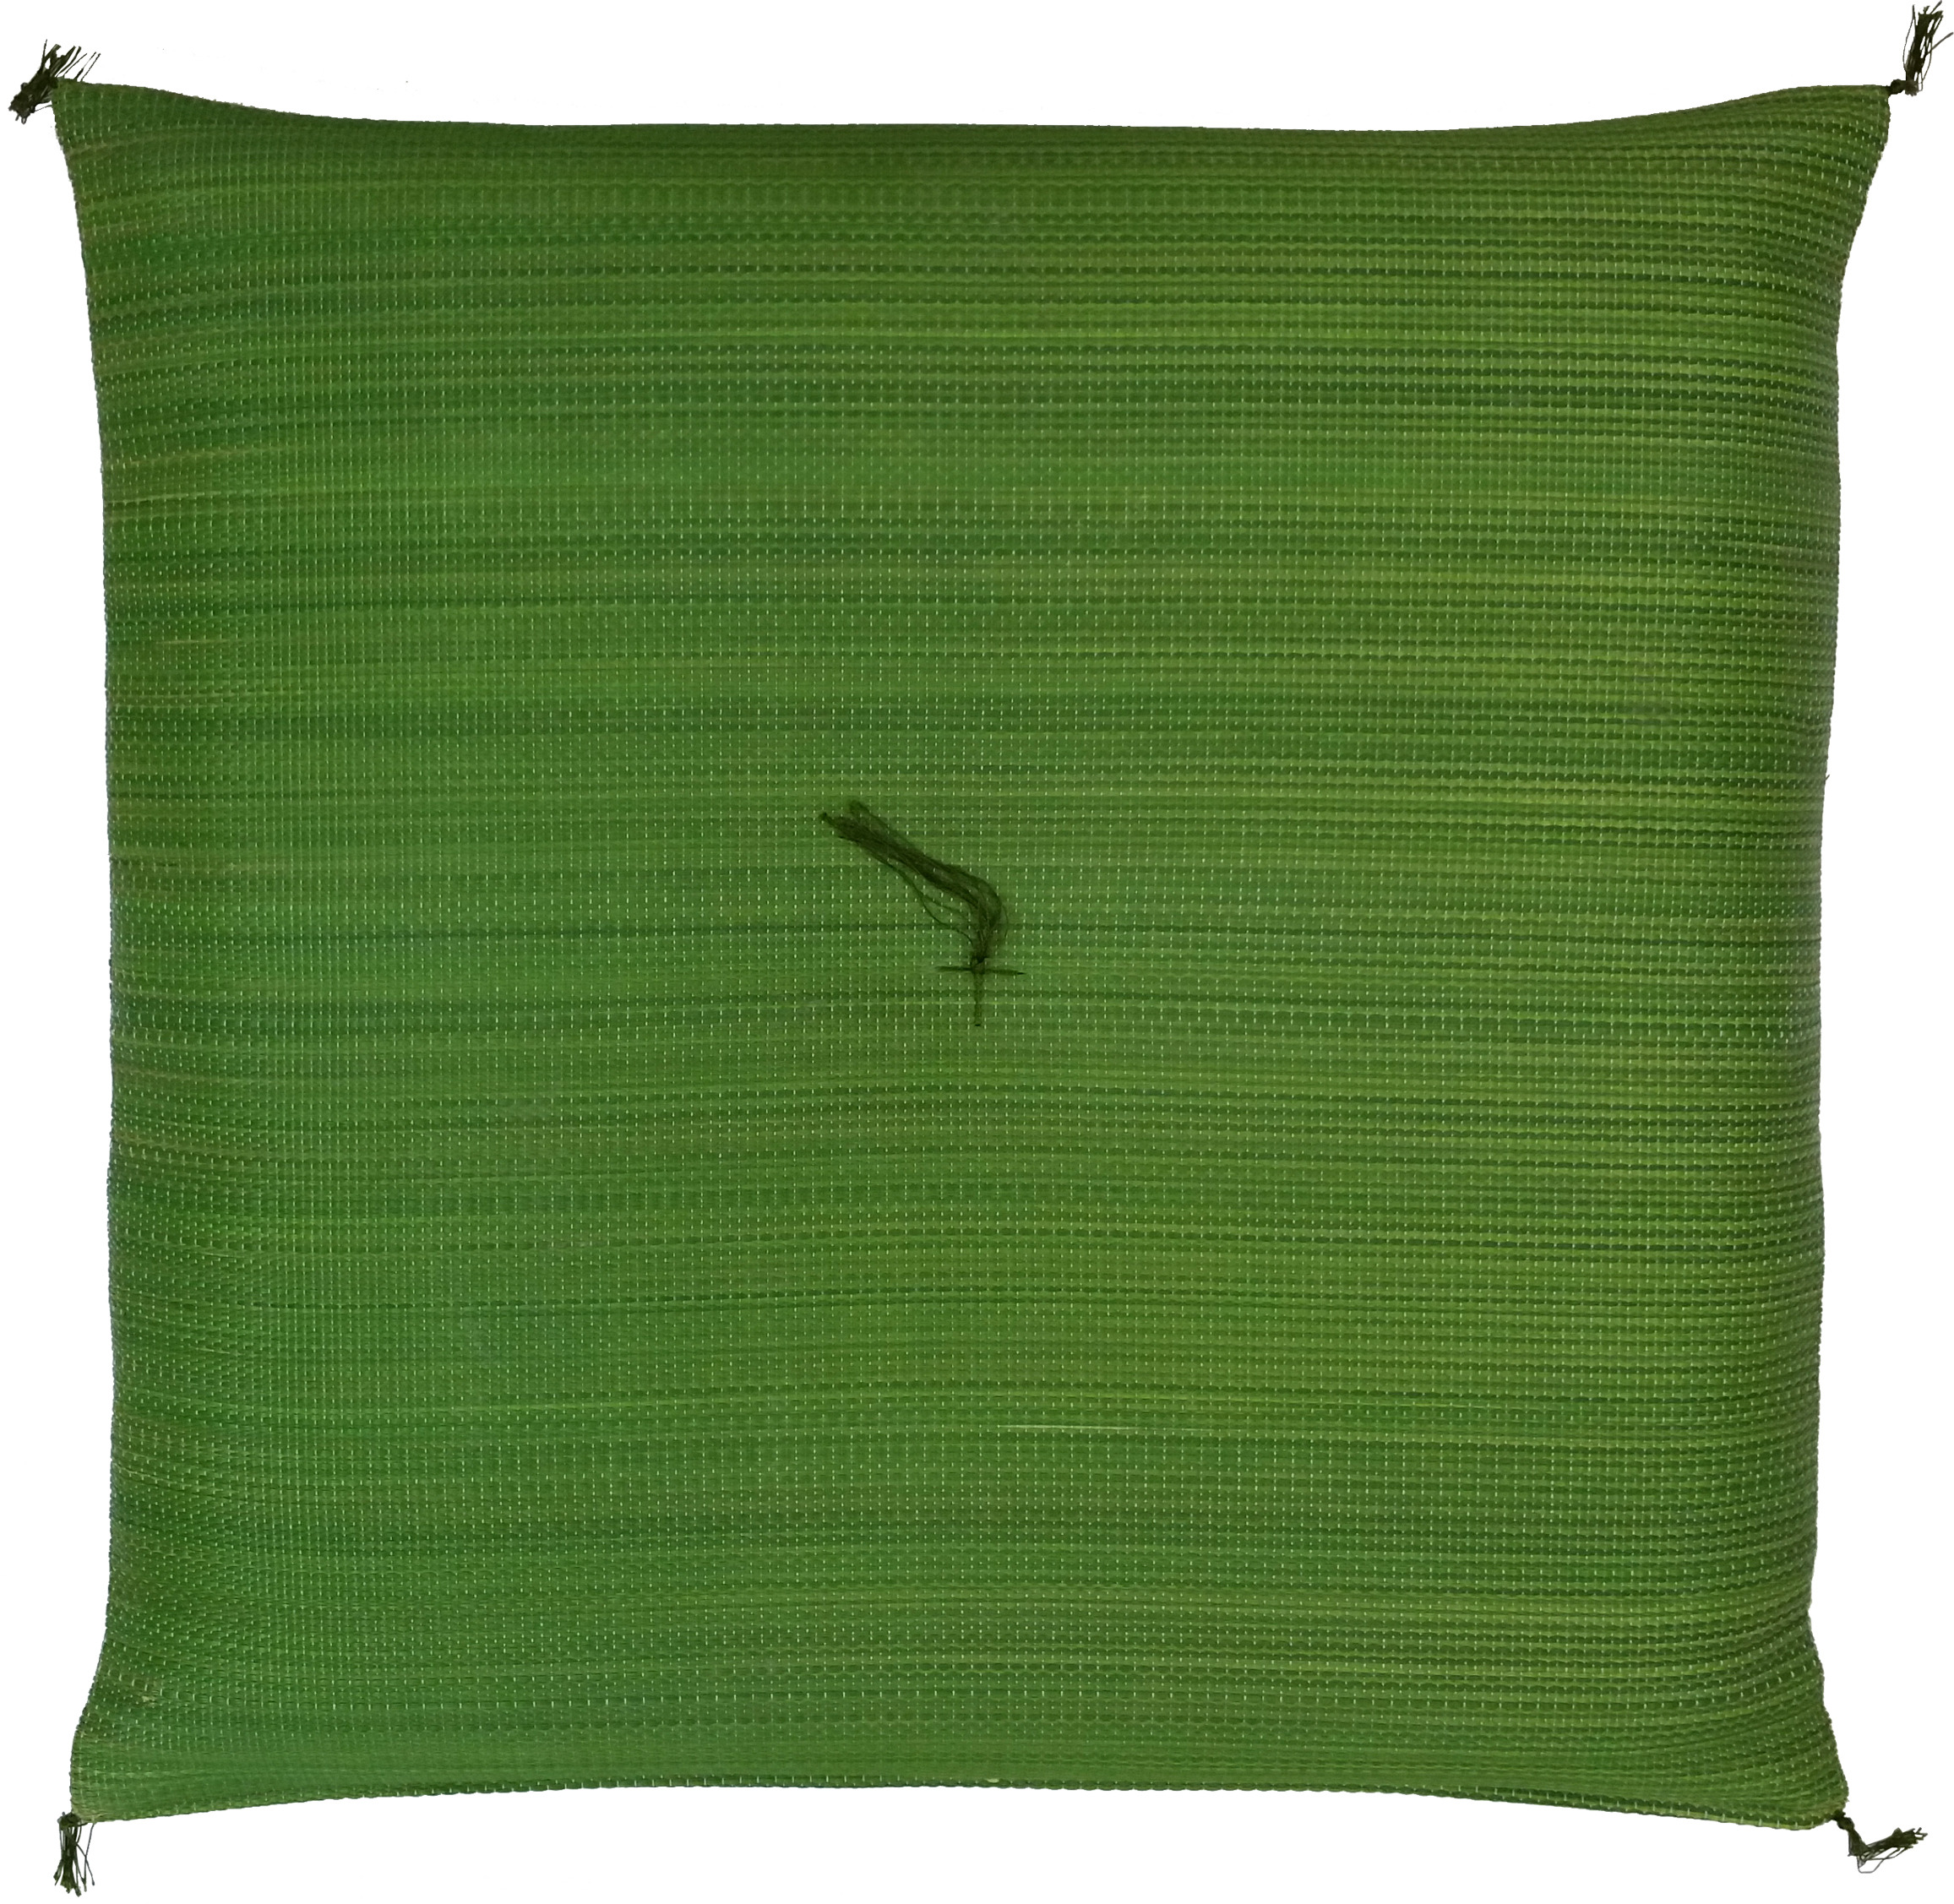 【純国産 い草座布団】グリーン Rush Grass Cushion : GREEN Made in JAPAN